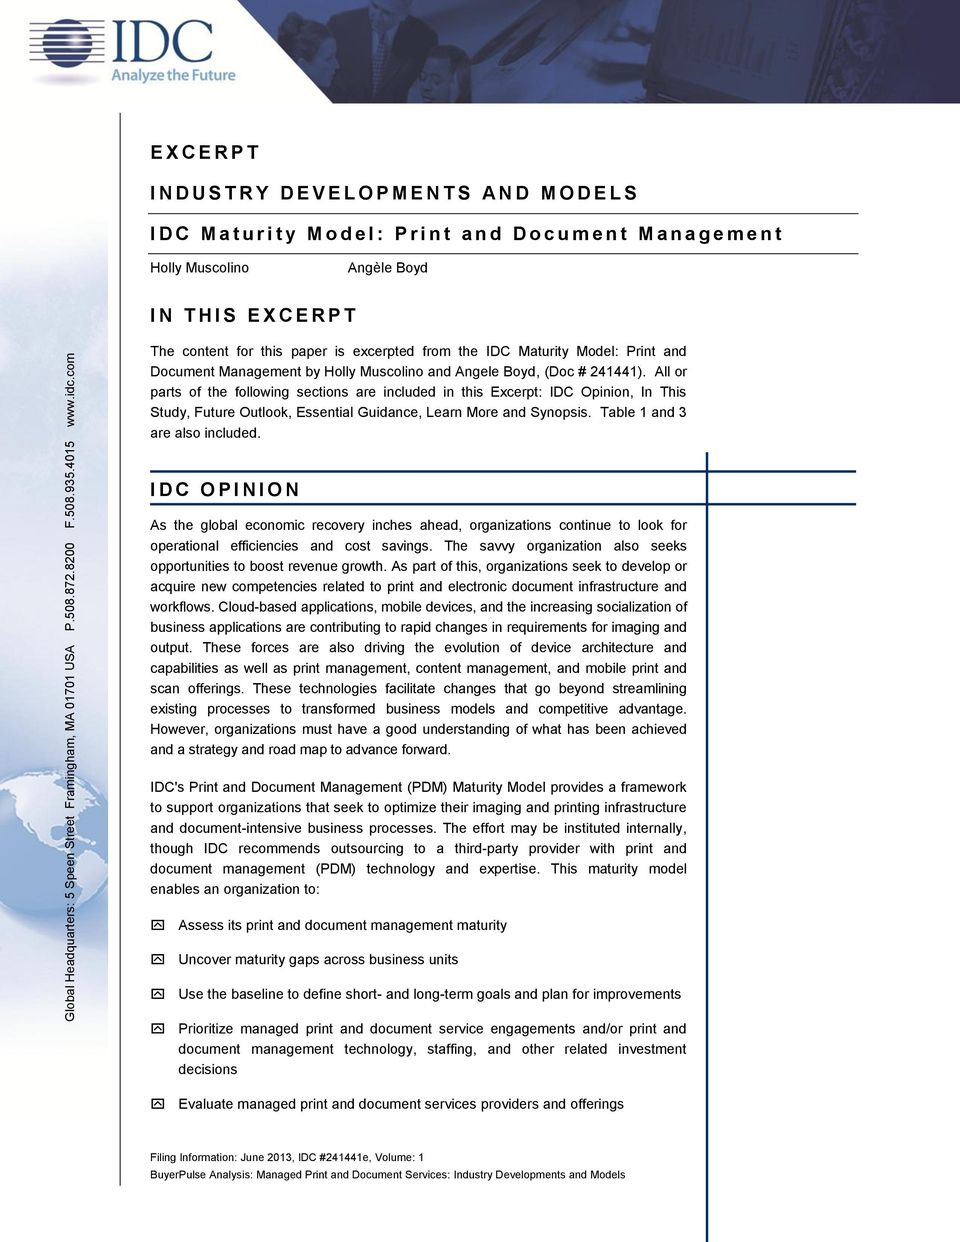 S E X C E R P T The content for this paper is excerpted from the IDC Maturity Model: Print and Document Management by Holly Muscolino and Angele Boyd, (Doc # 241441).